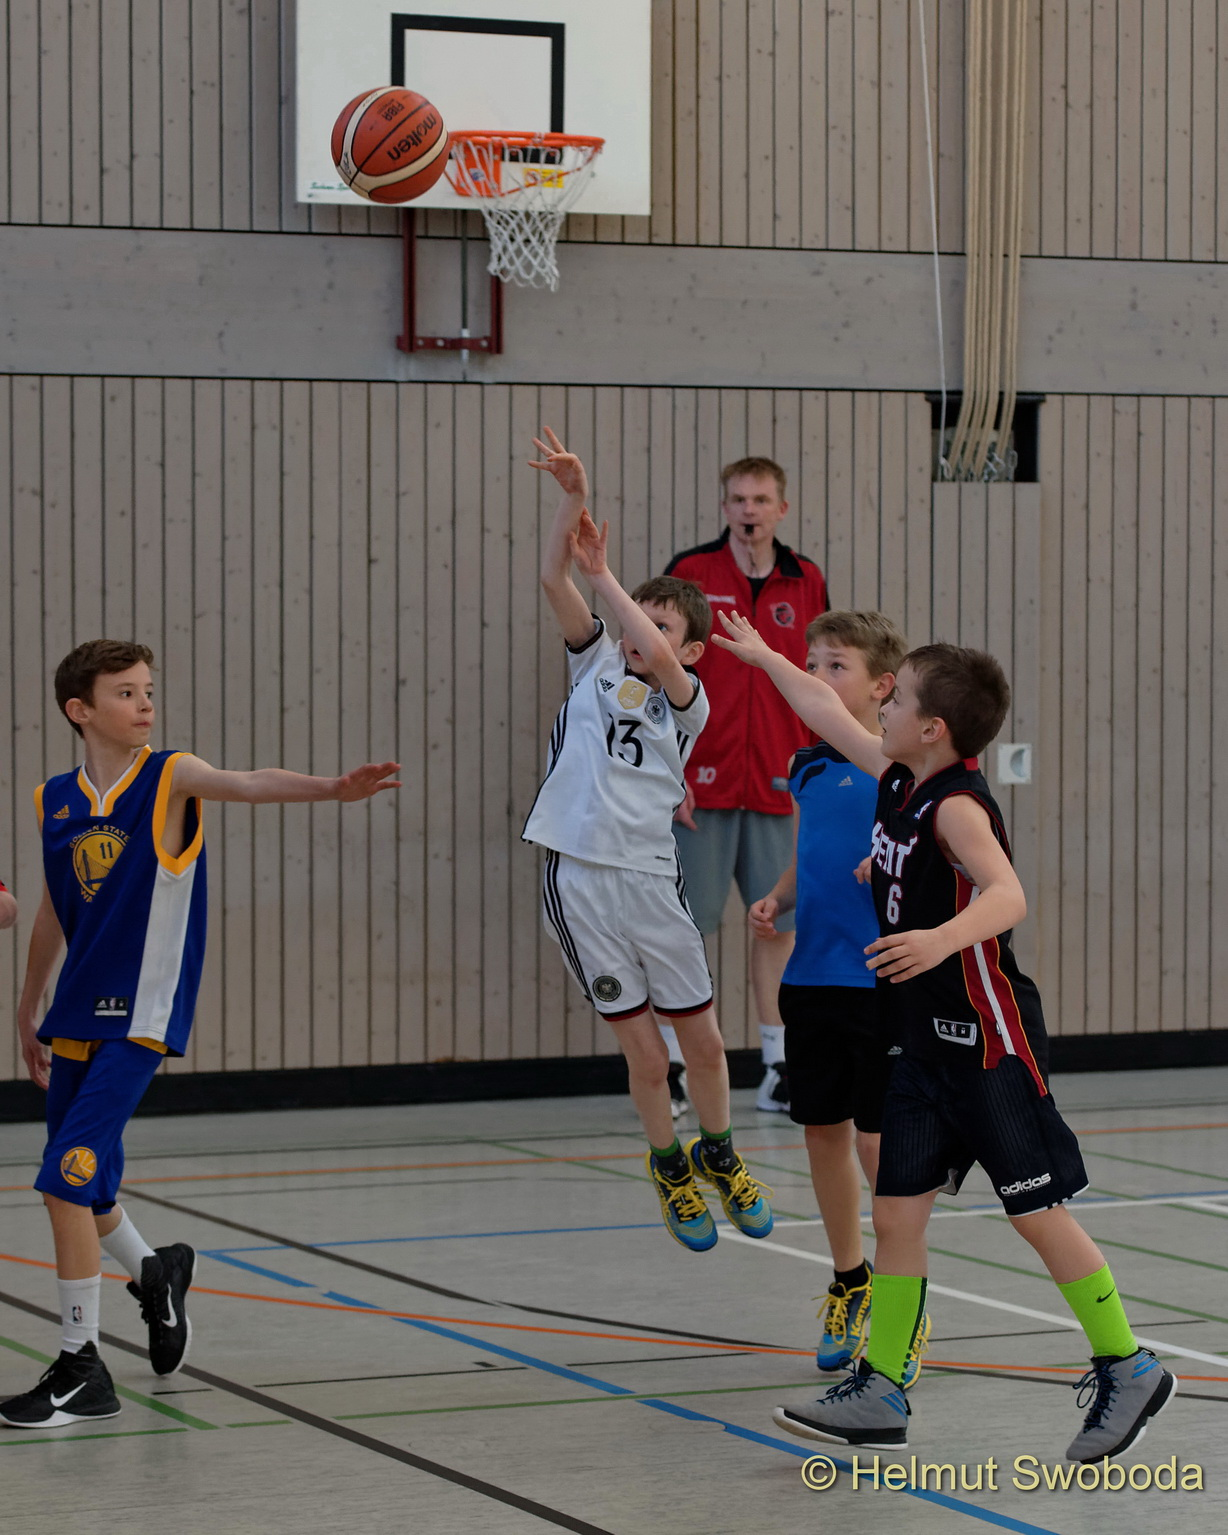 d170402-162736900-100-basketball_weilheim-mixed-turnier_33657289512_o